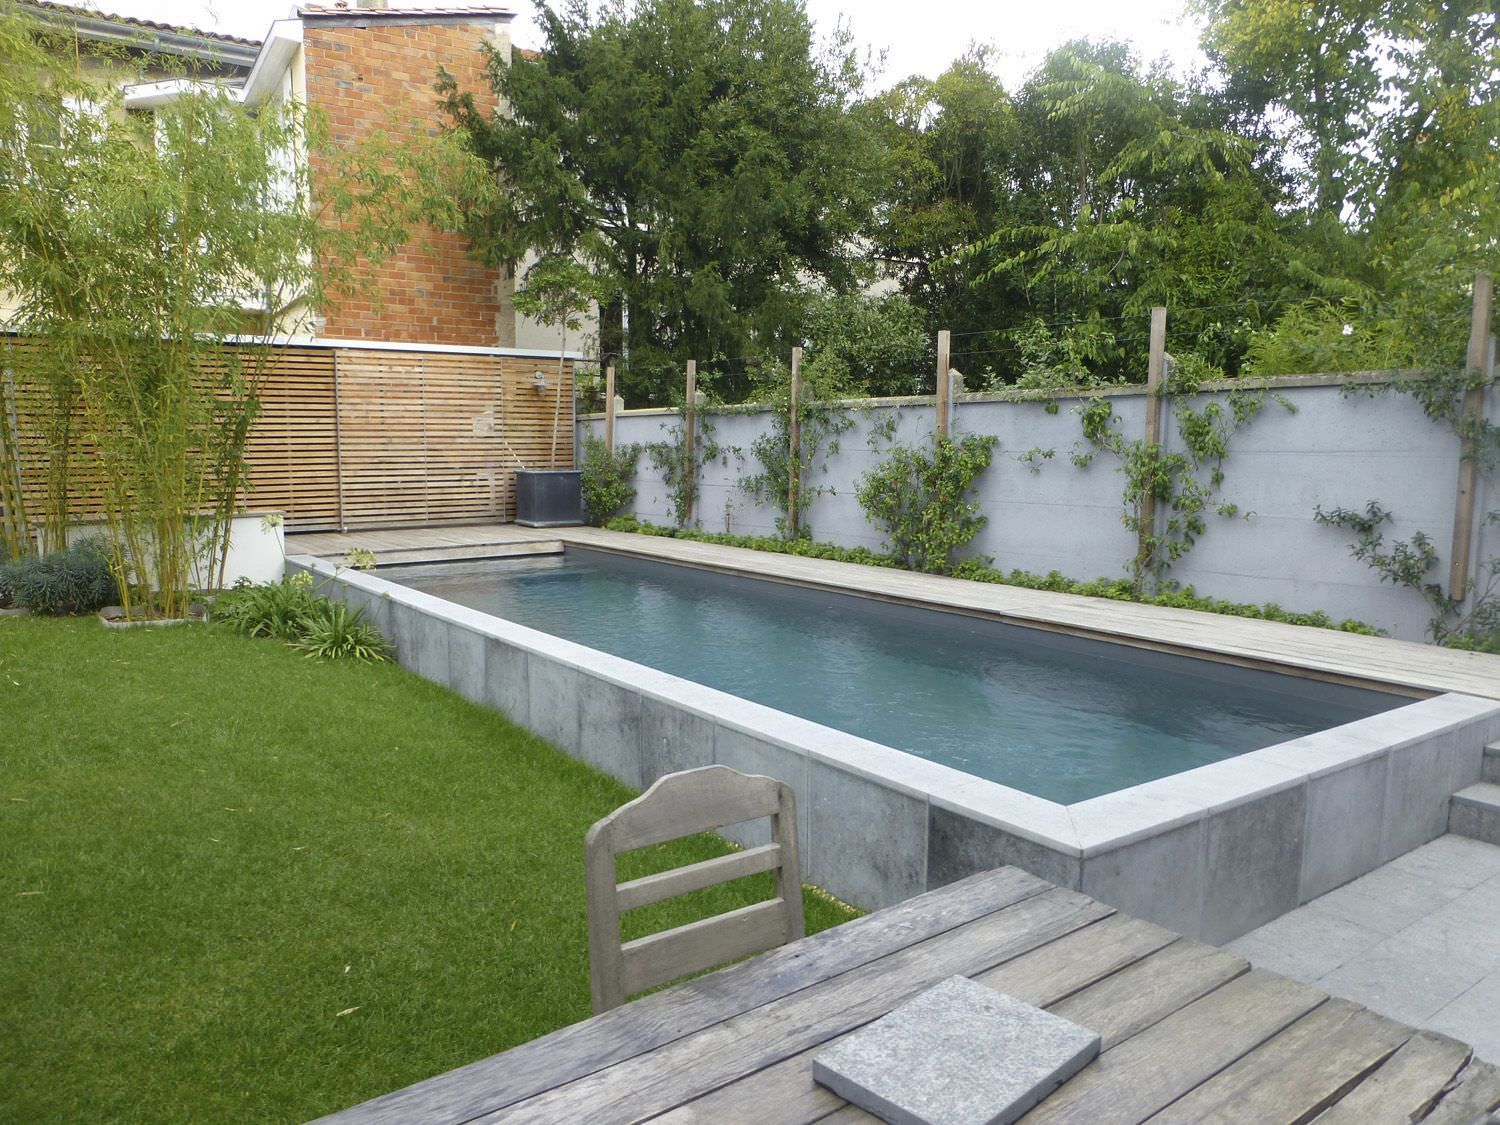 Piscine semi enterr e en b ton plouf pinterest for Piscine bassin exterieur 92